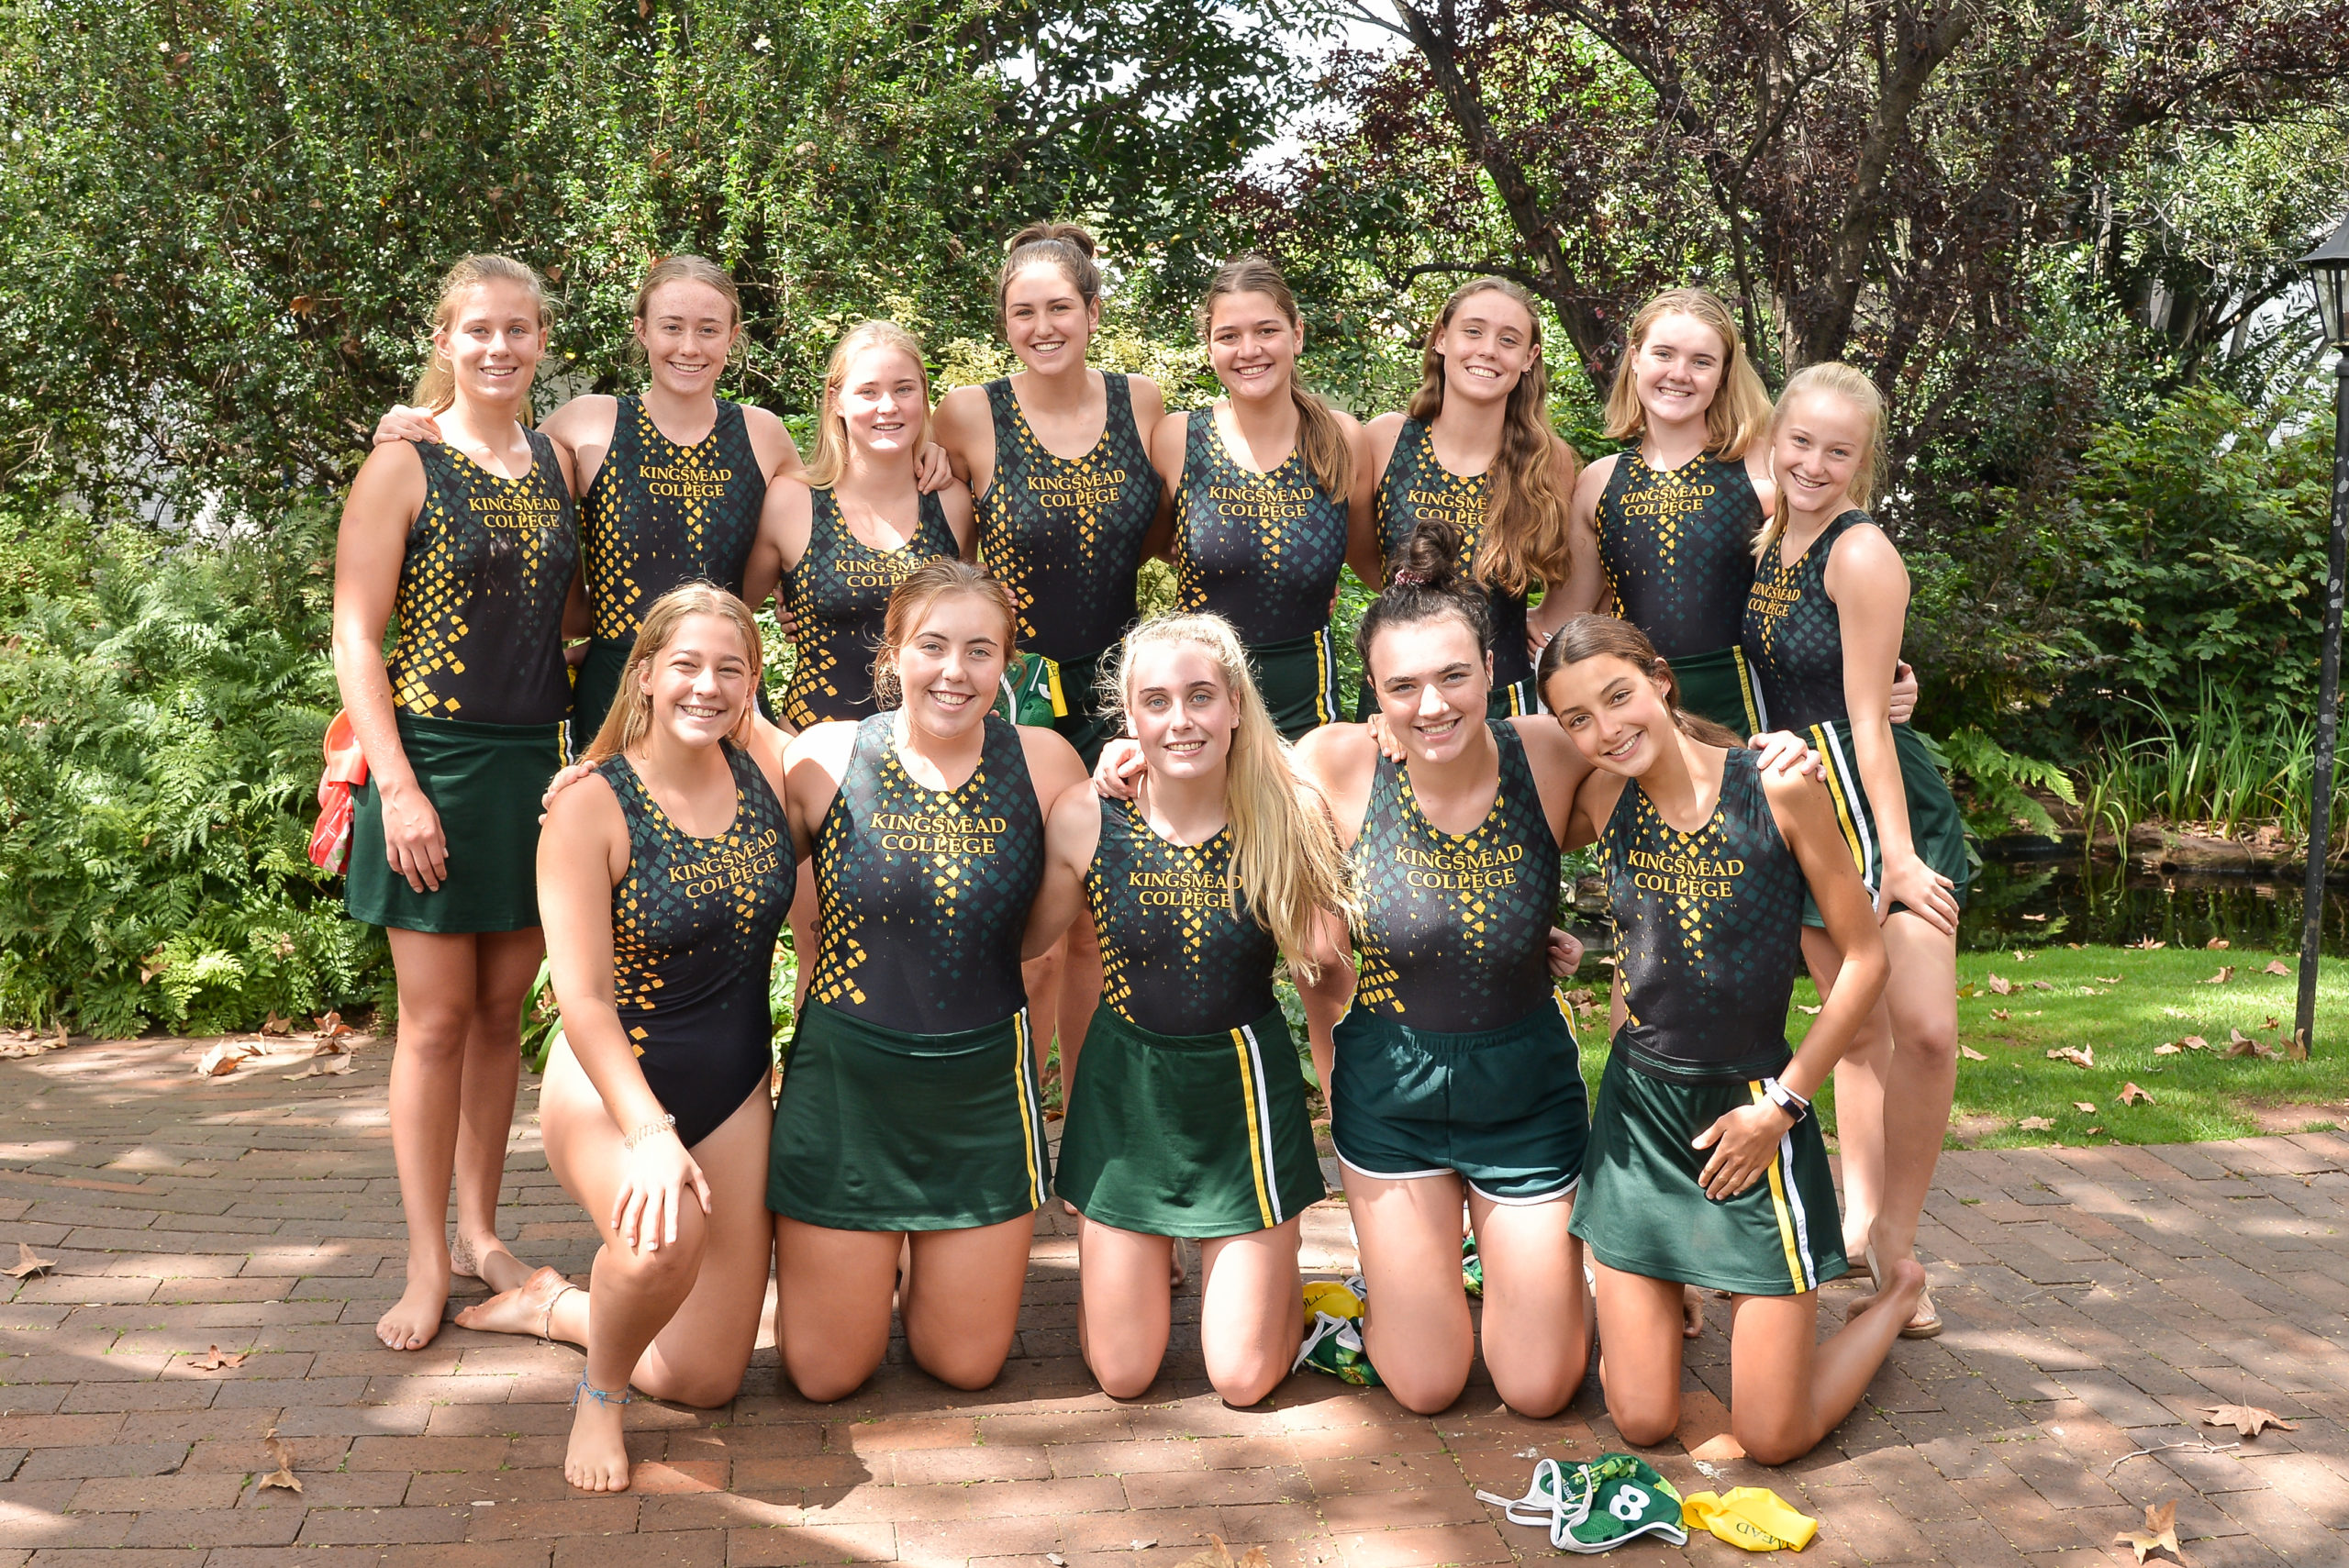 SS Waterpolo OMC 1 scaled Kingsmead College